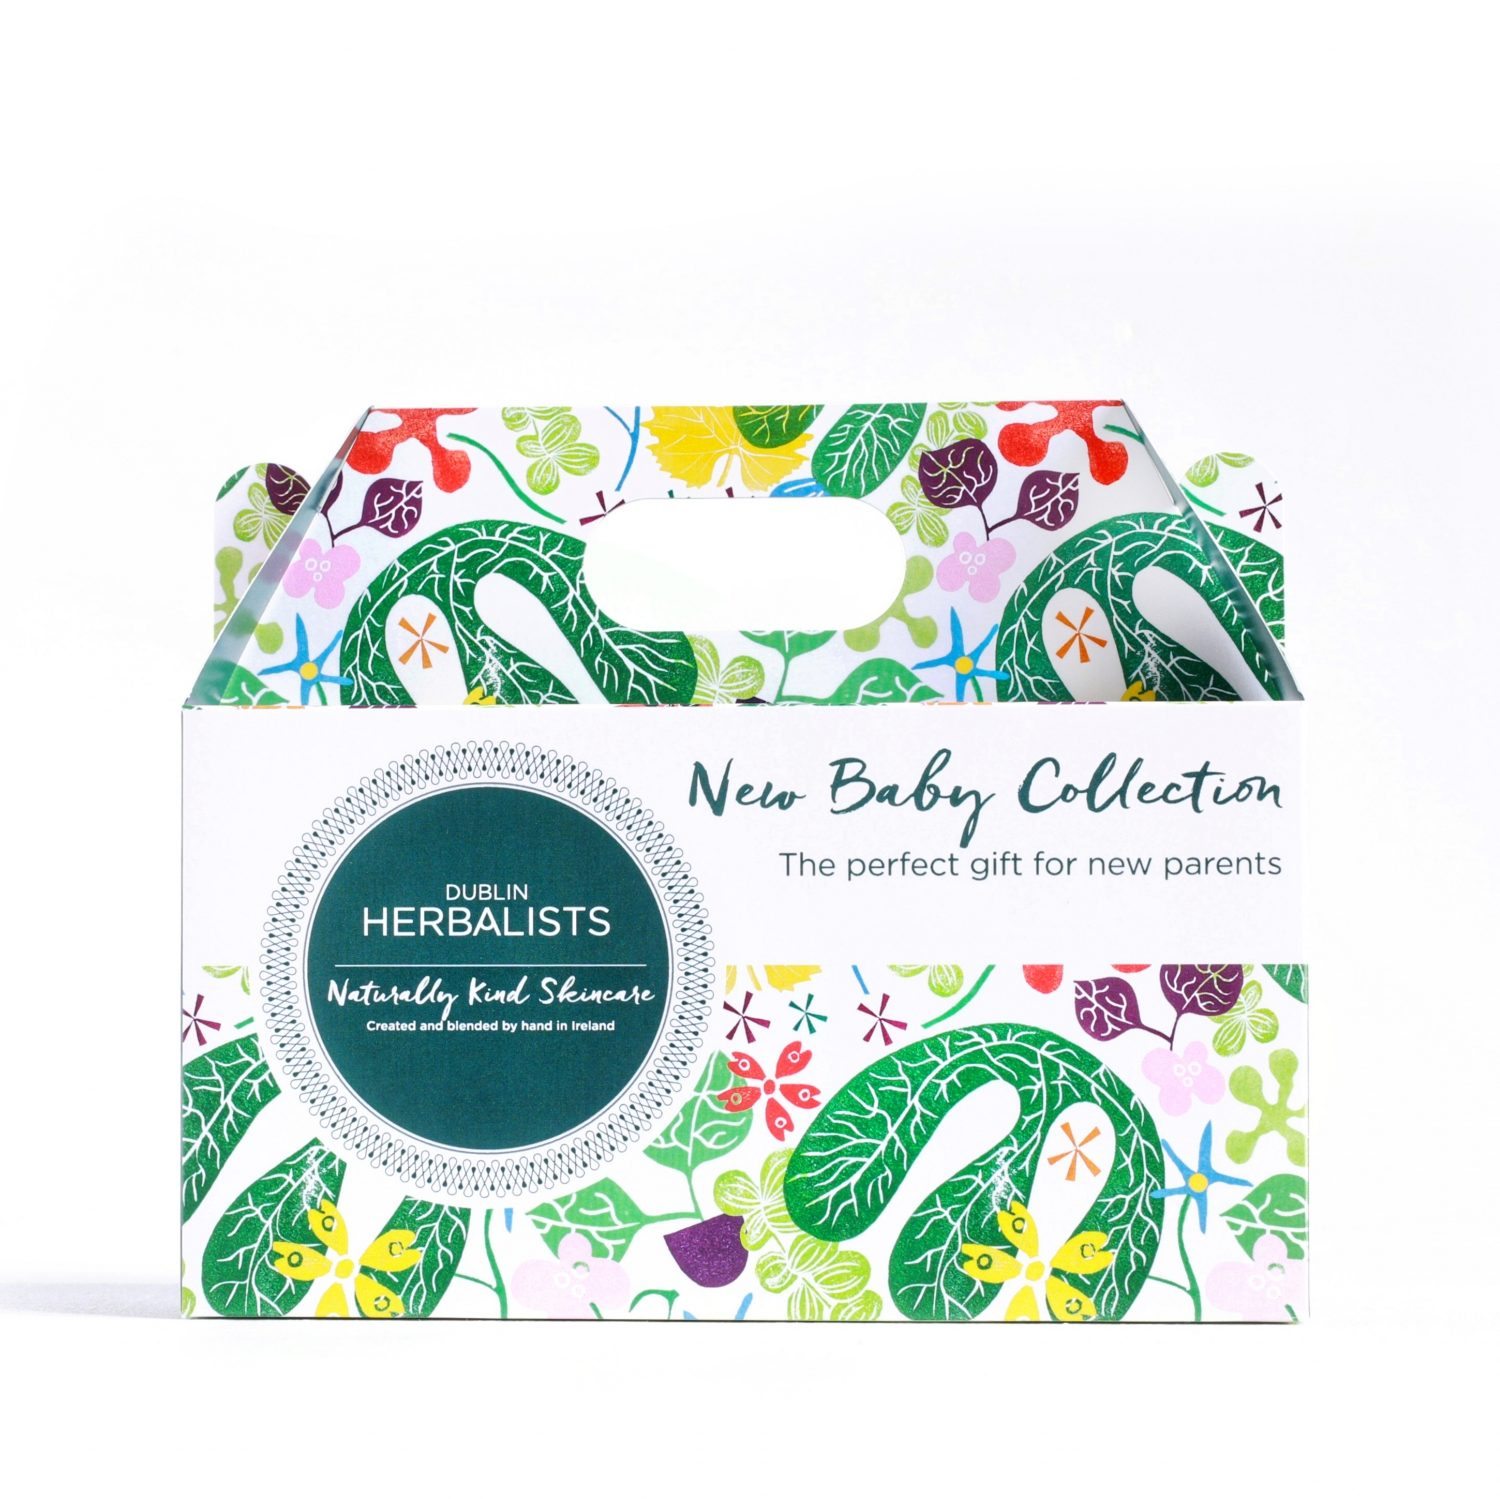 natural skincare gift for newborn baby